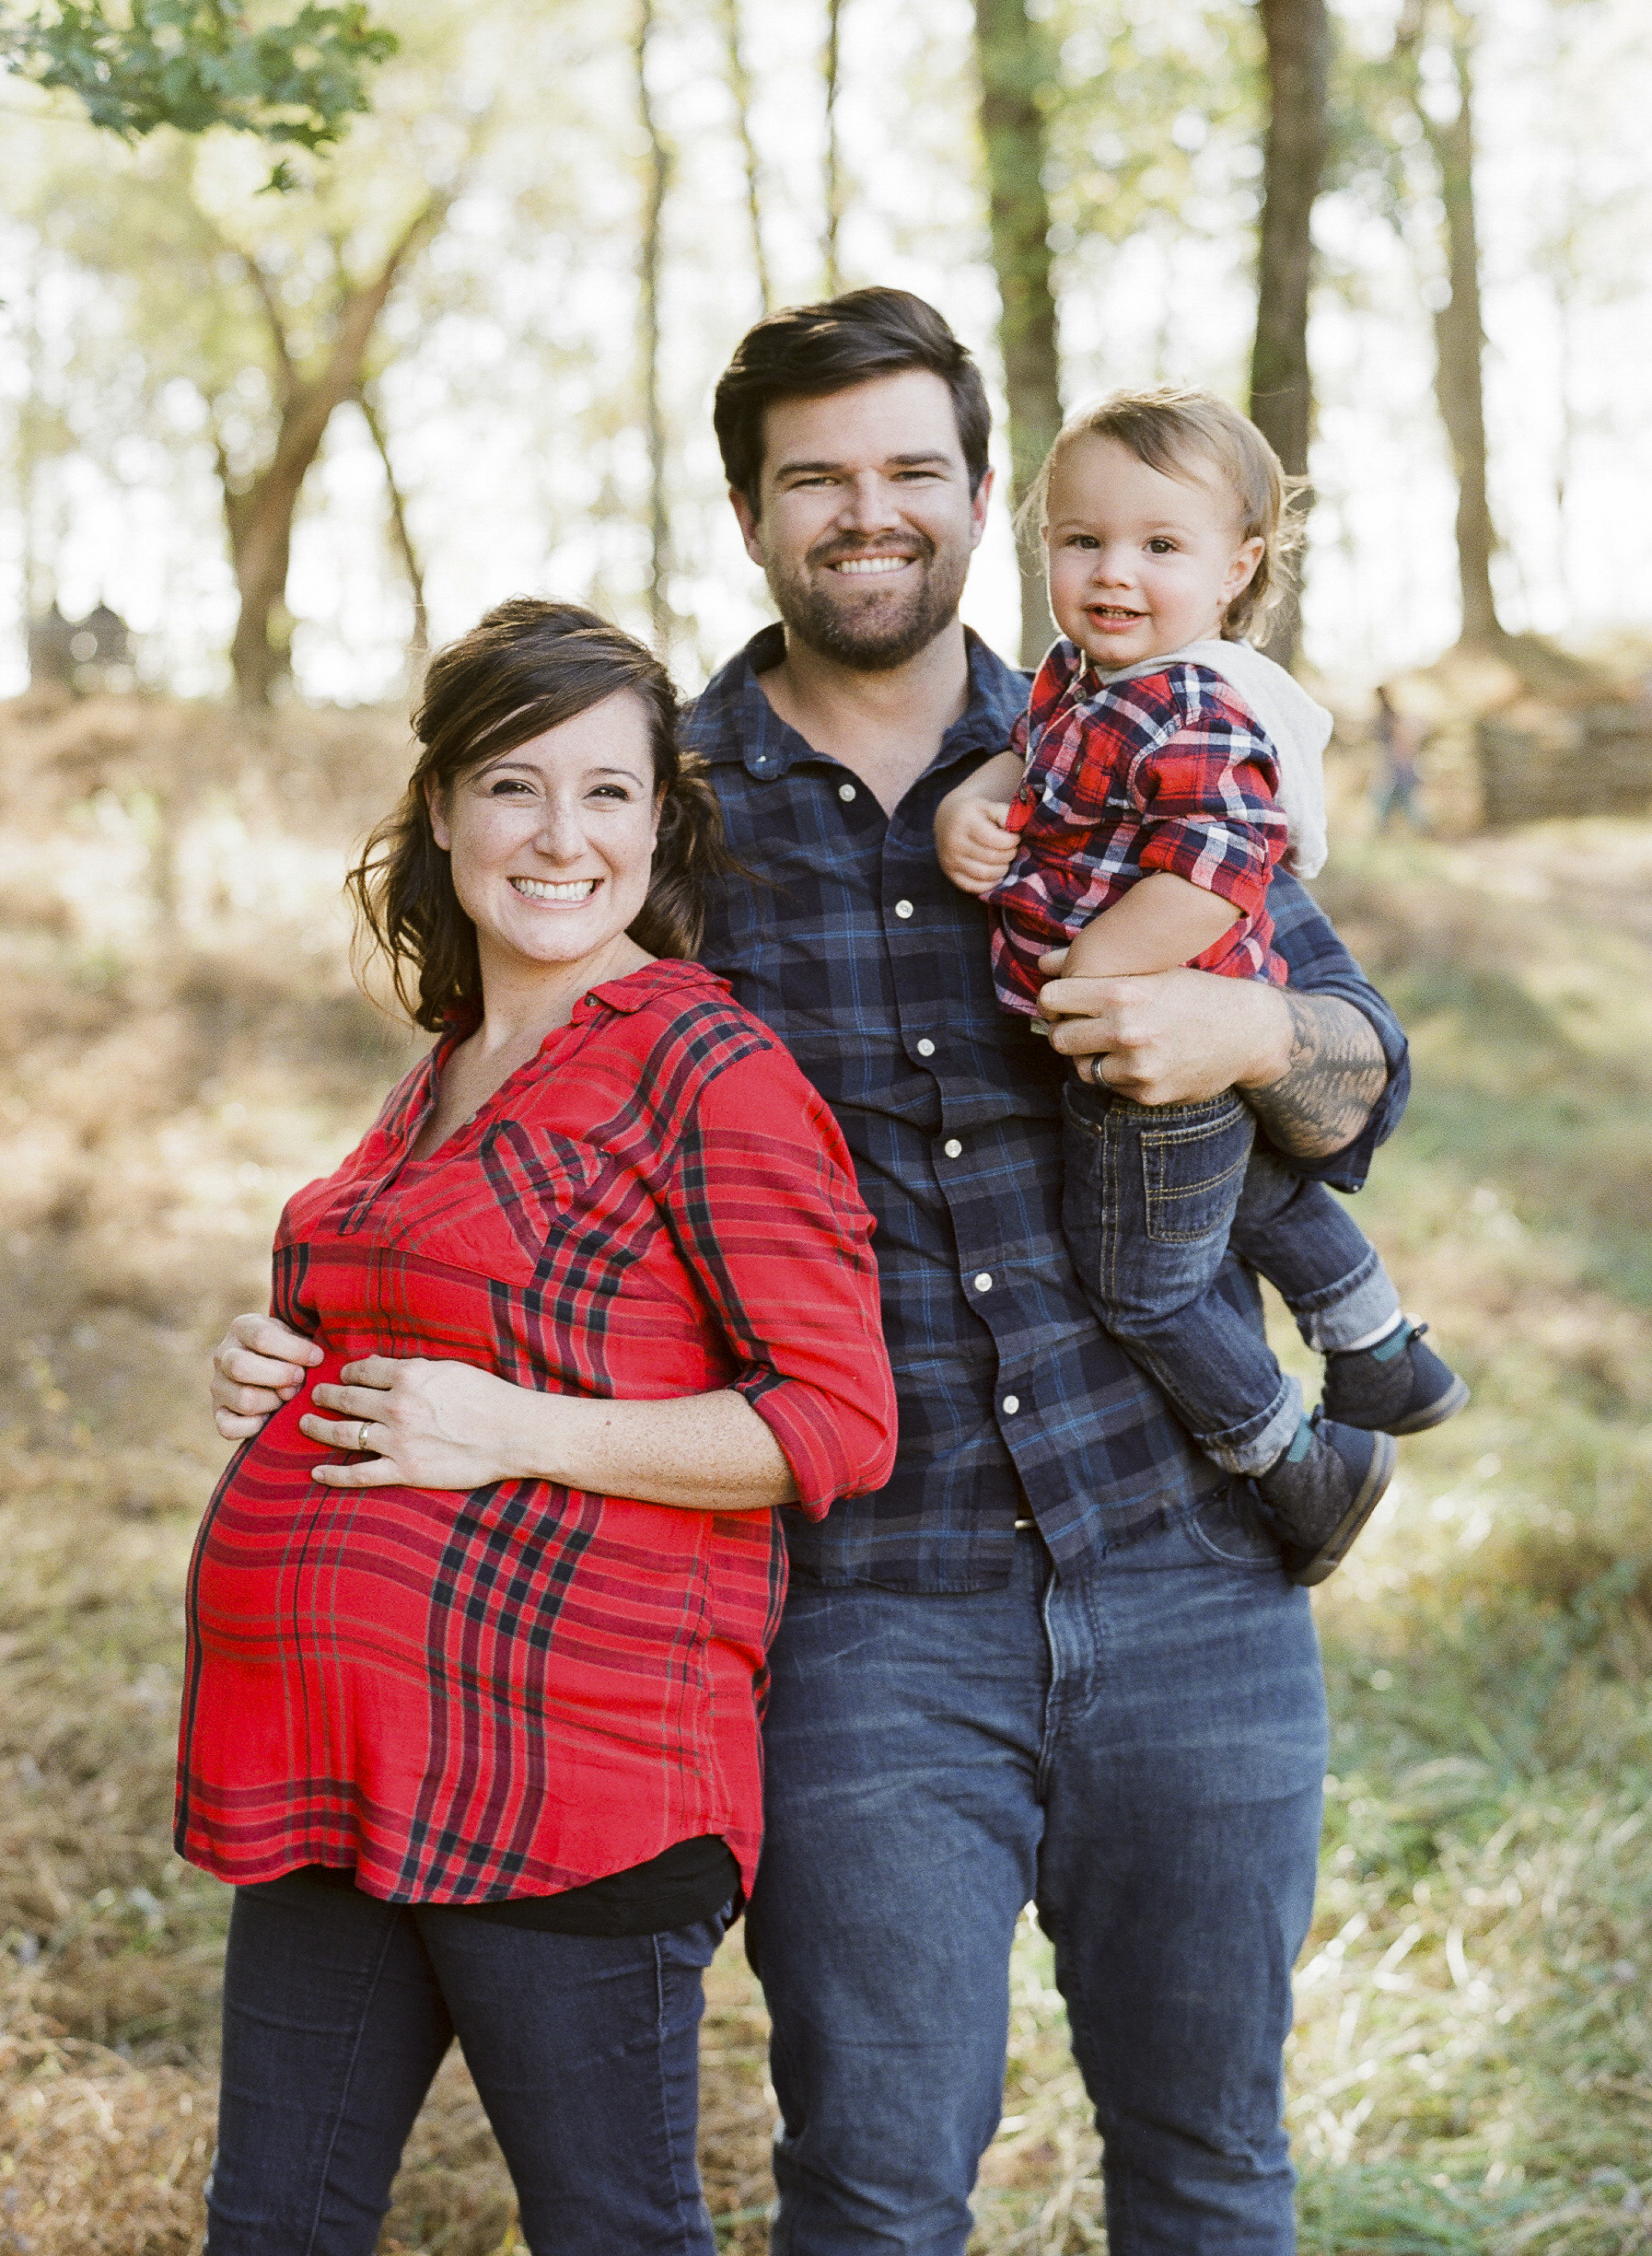 Brandon Chesbro Family Photographer Photo-35.jpg